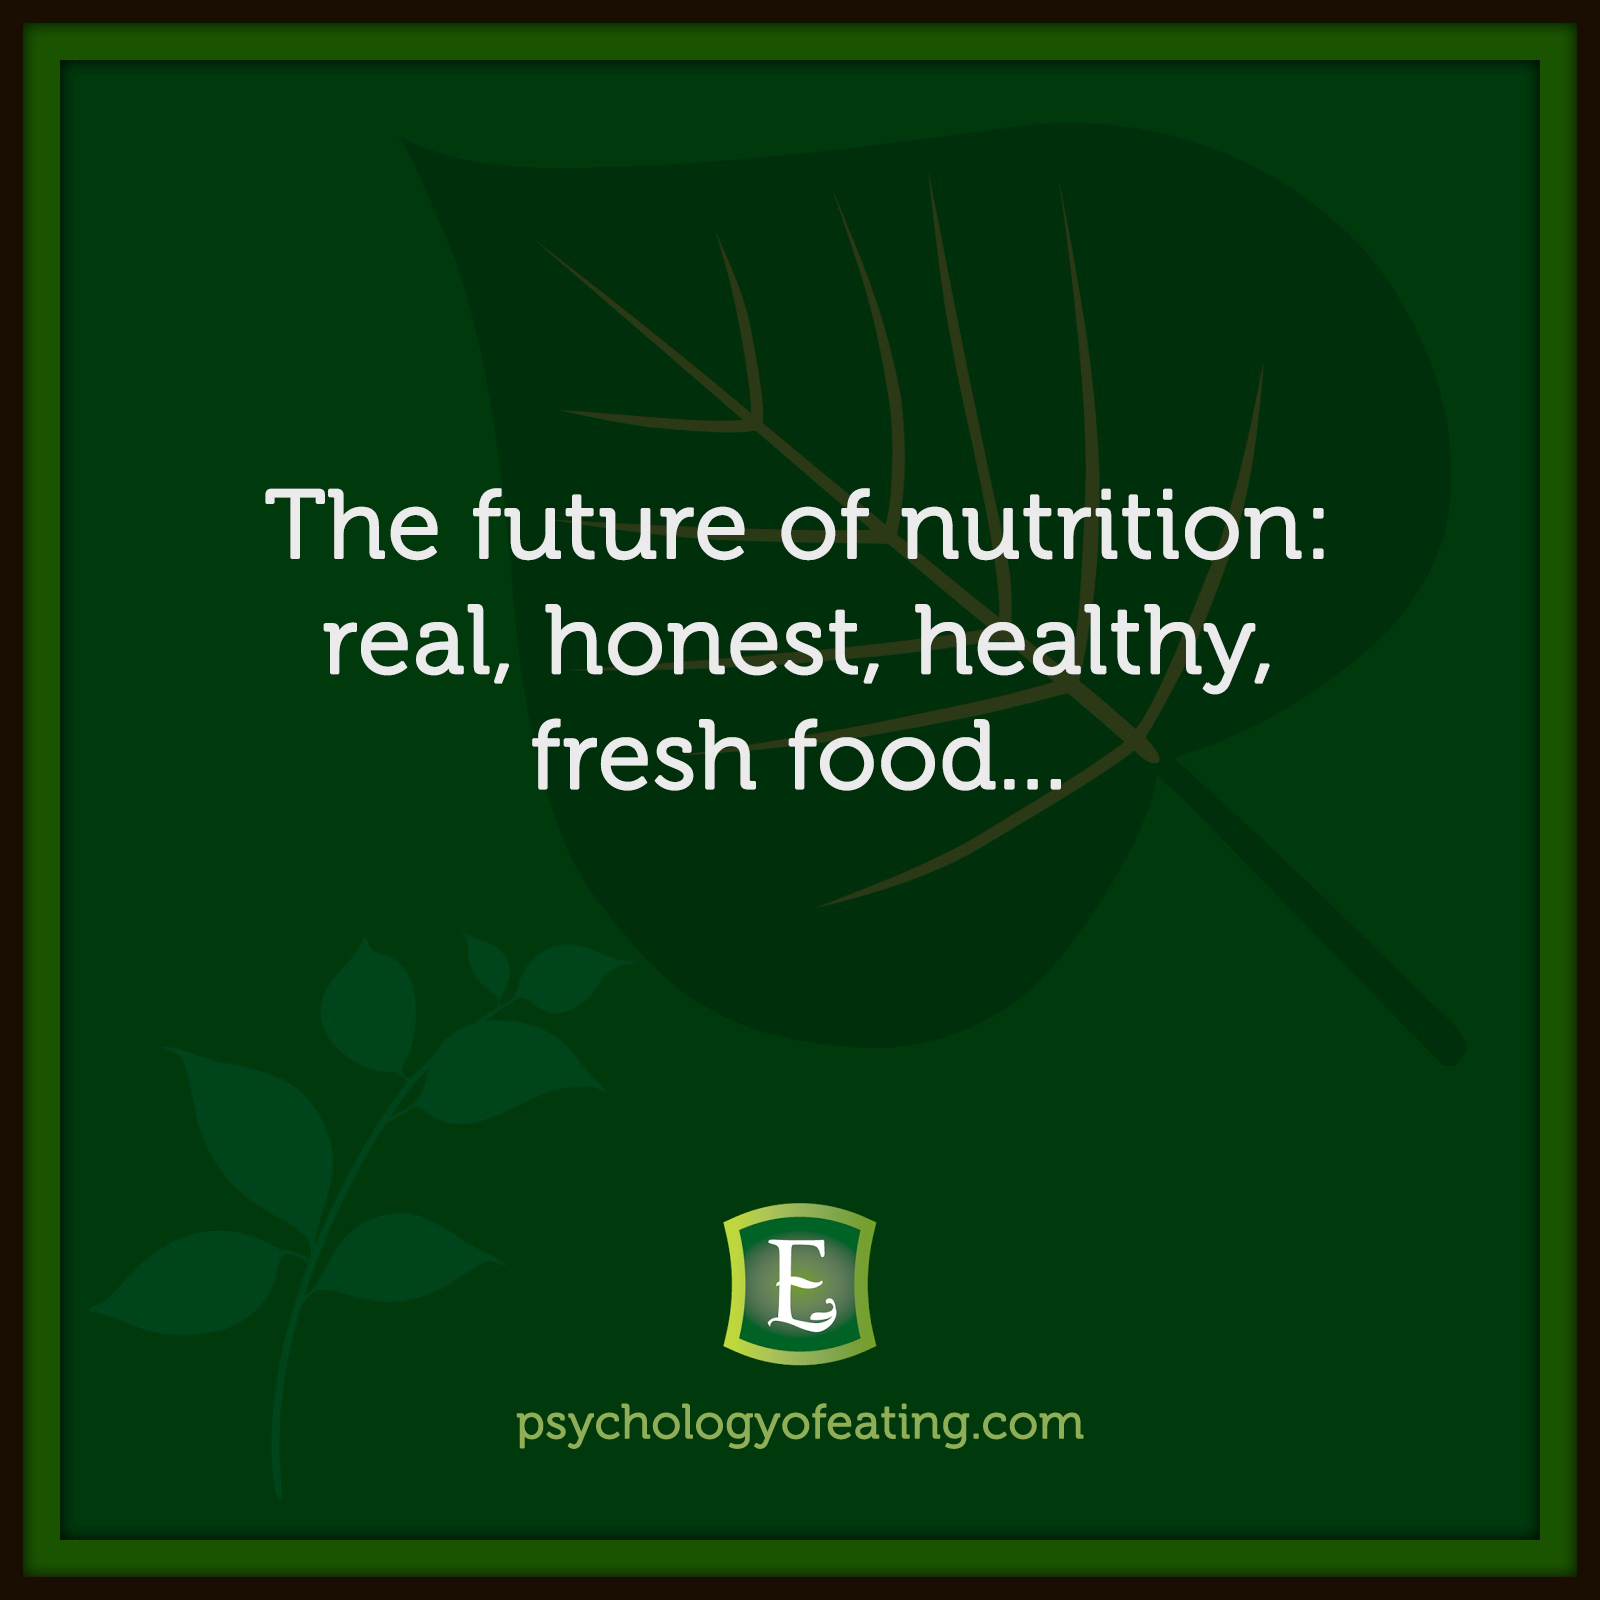 The future of nutrition: real, honest, healthy, fresh food… #health #nutrition #eatingpsychology #IPE